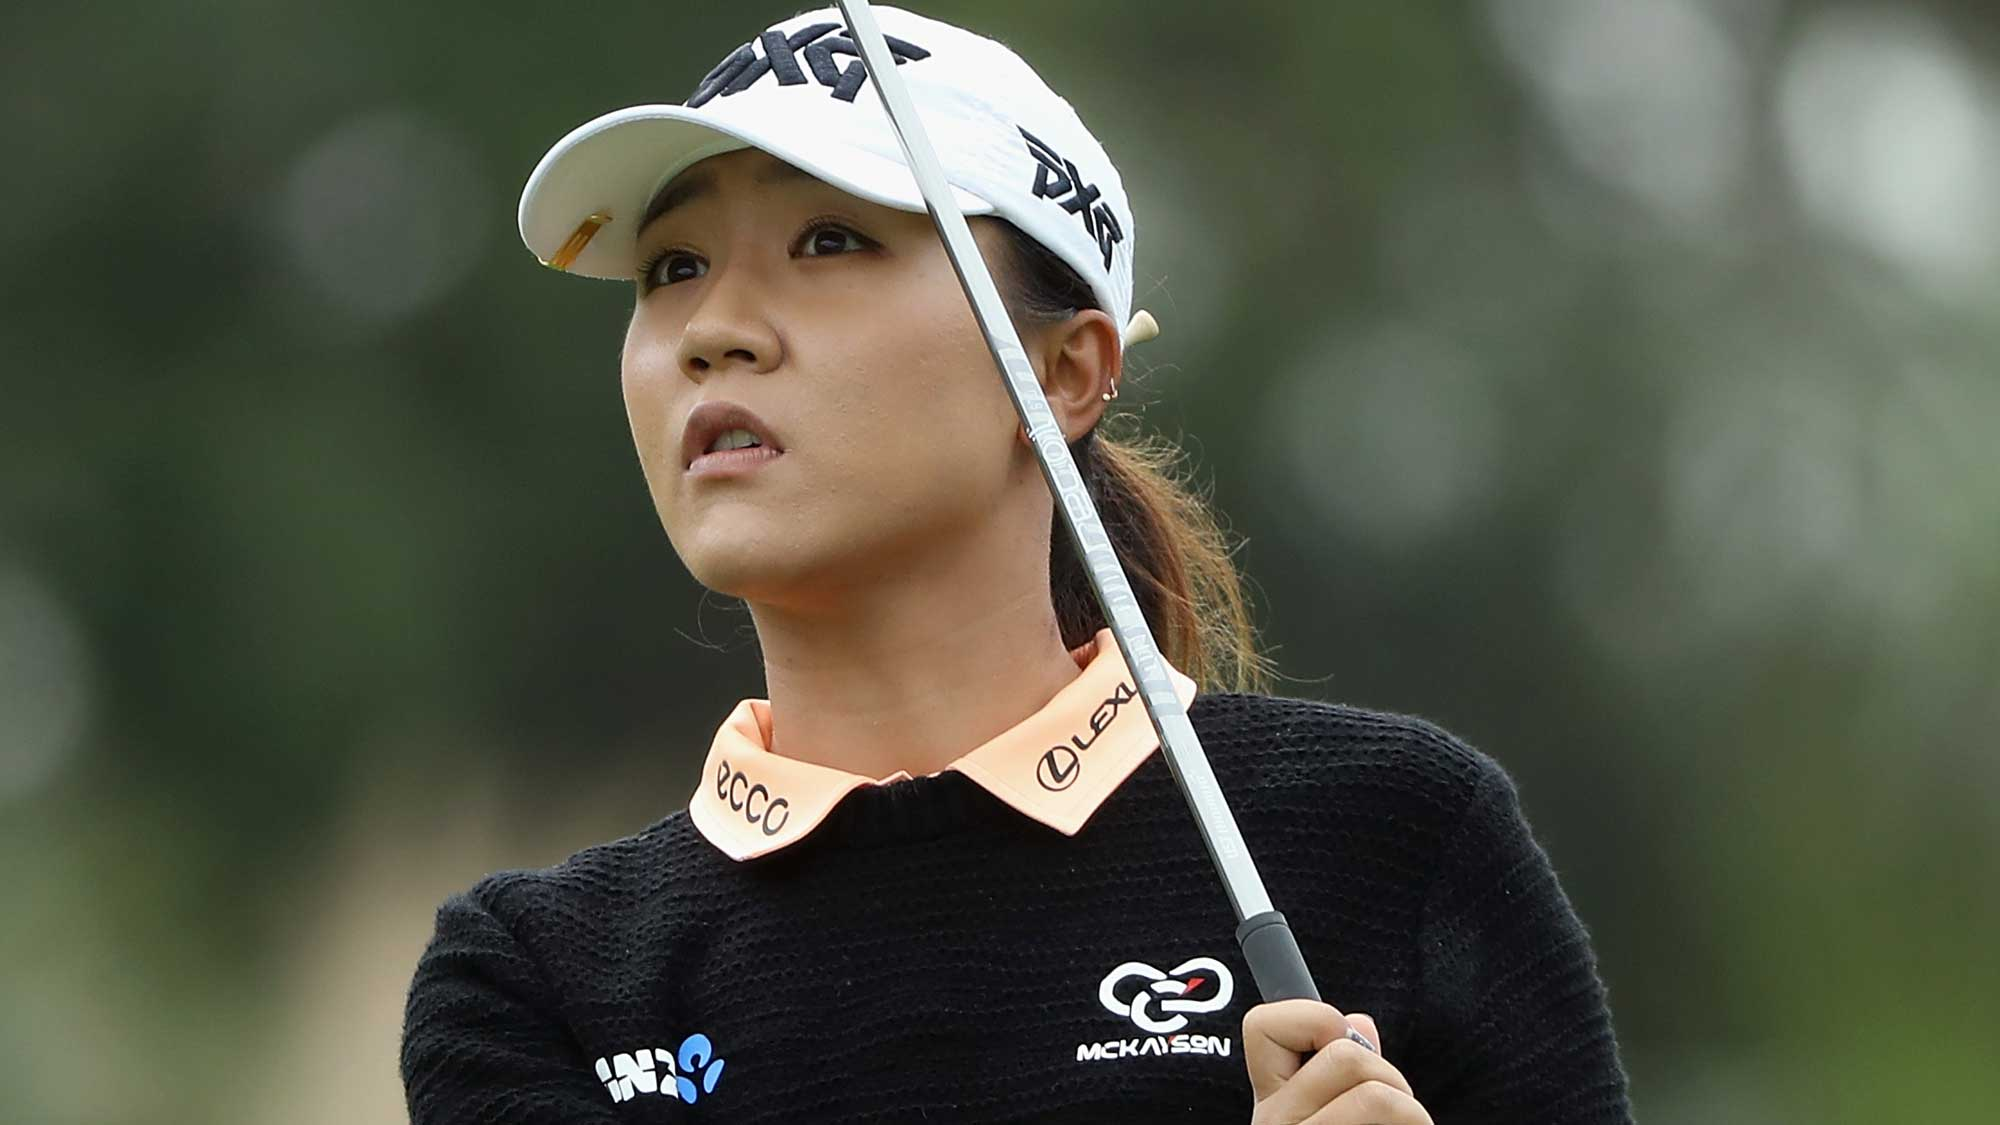 Lydia Ko of New Zealand plays a shot on the second hole during round one of the CME Group Tour Championship